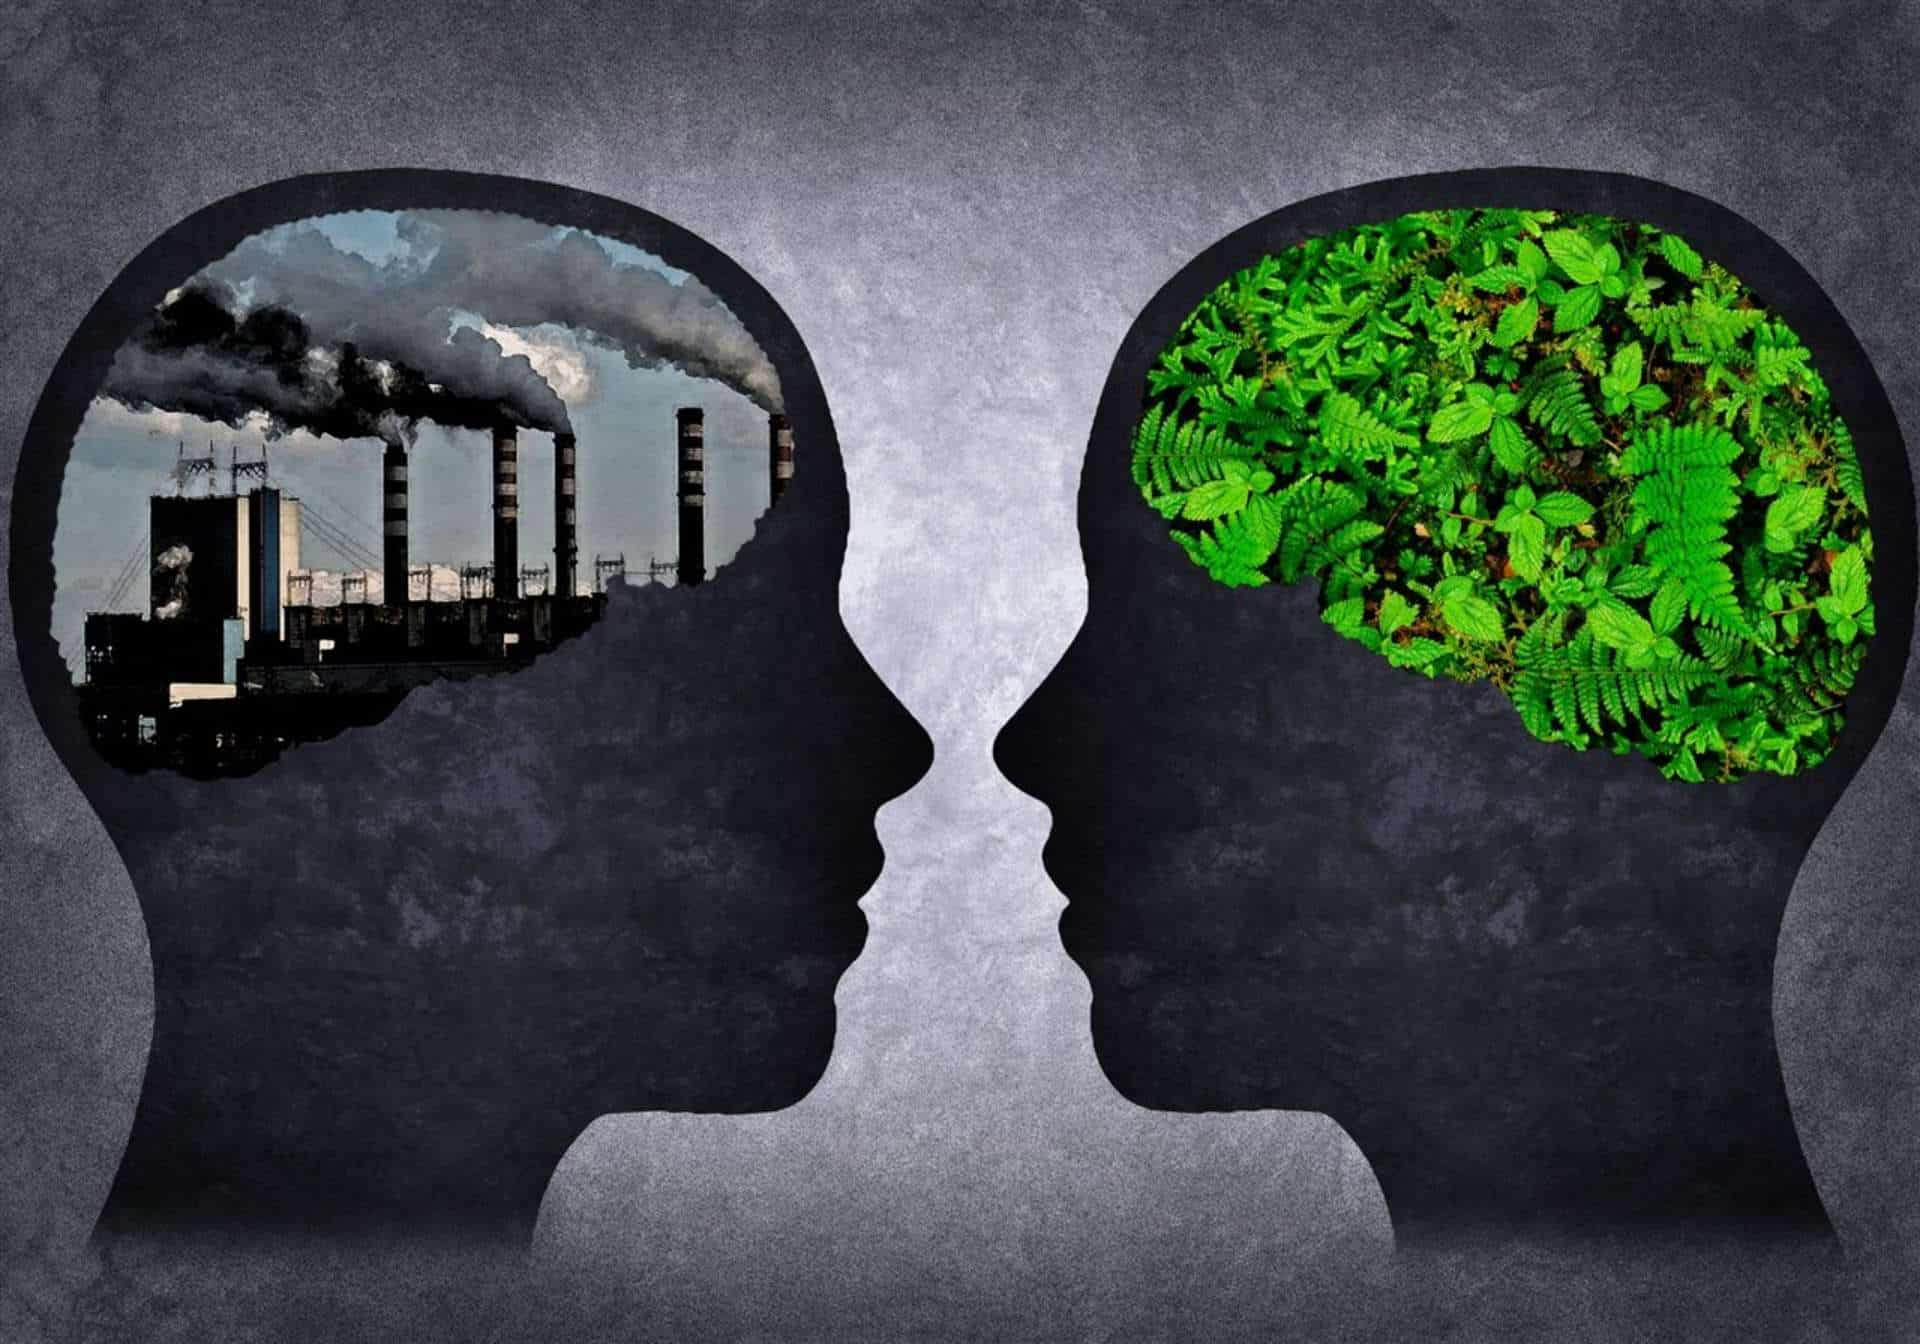 Childhood Air Pollution Exposure Linked to Poor Mental Health at Age 18